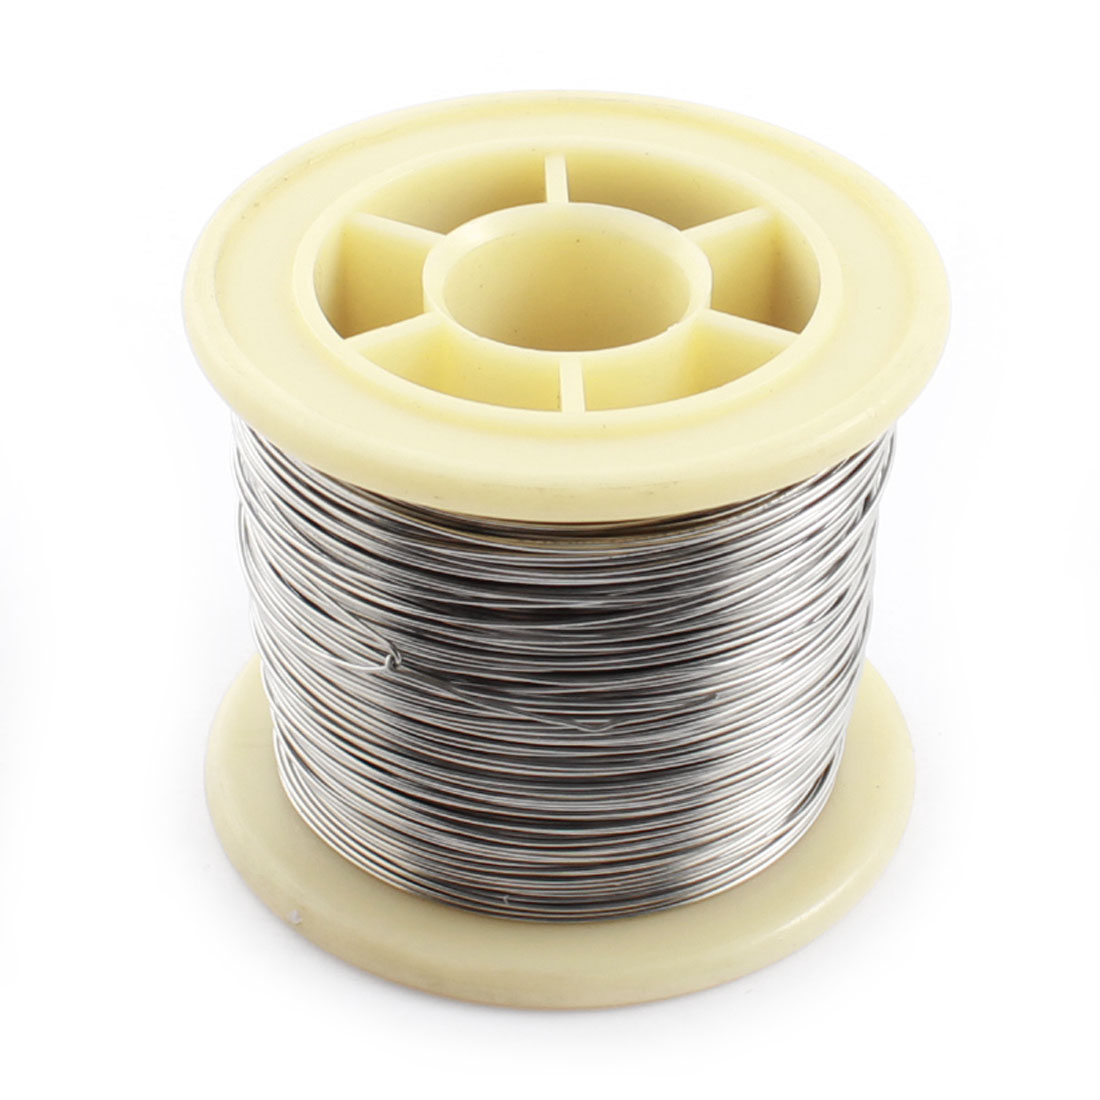 50meter 165ft Long 0.5mm Diameter Cable AWG24 Gauge Nickel Copper Alloy Resistance Heating Coils Resistor Wire